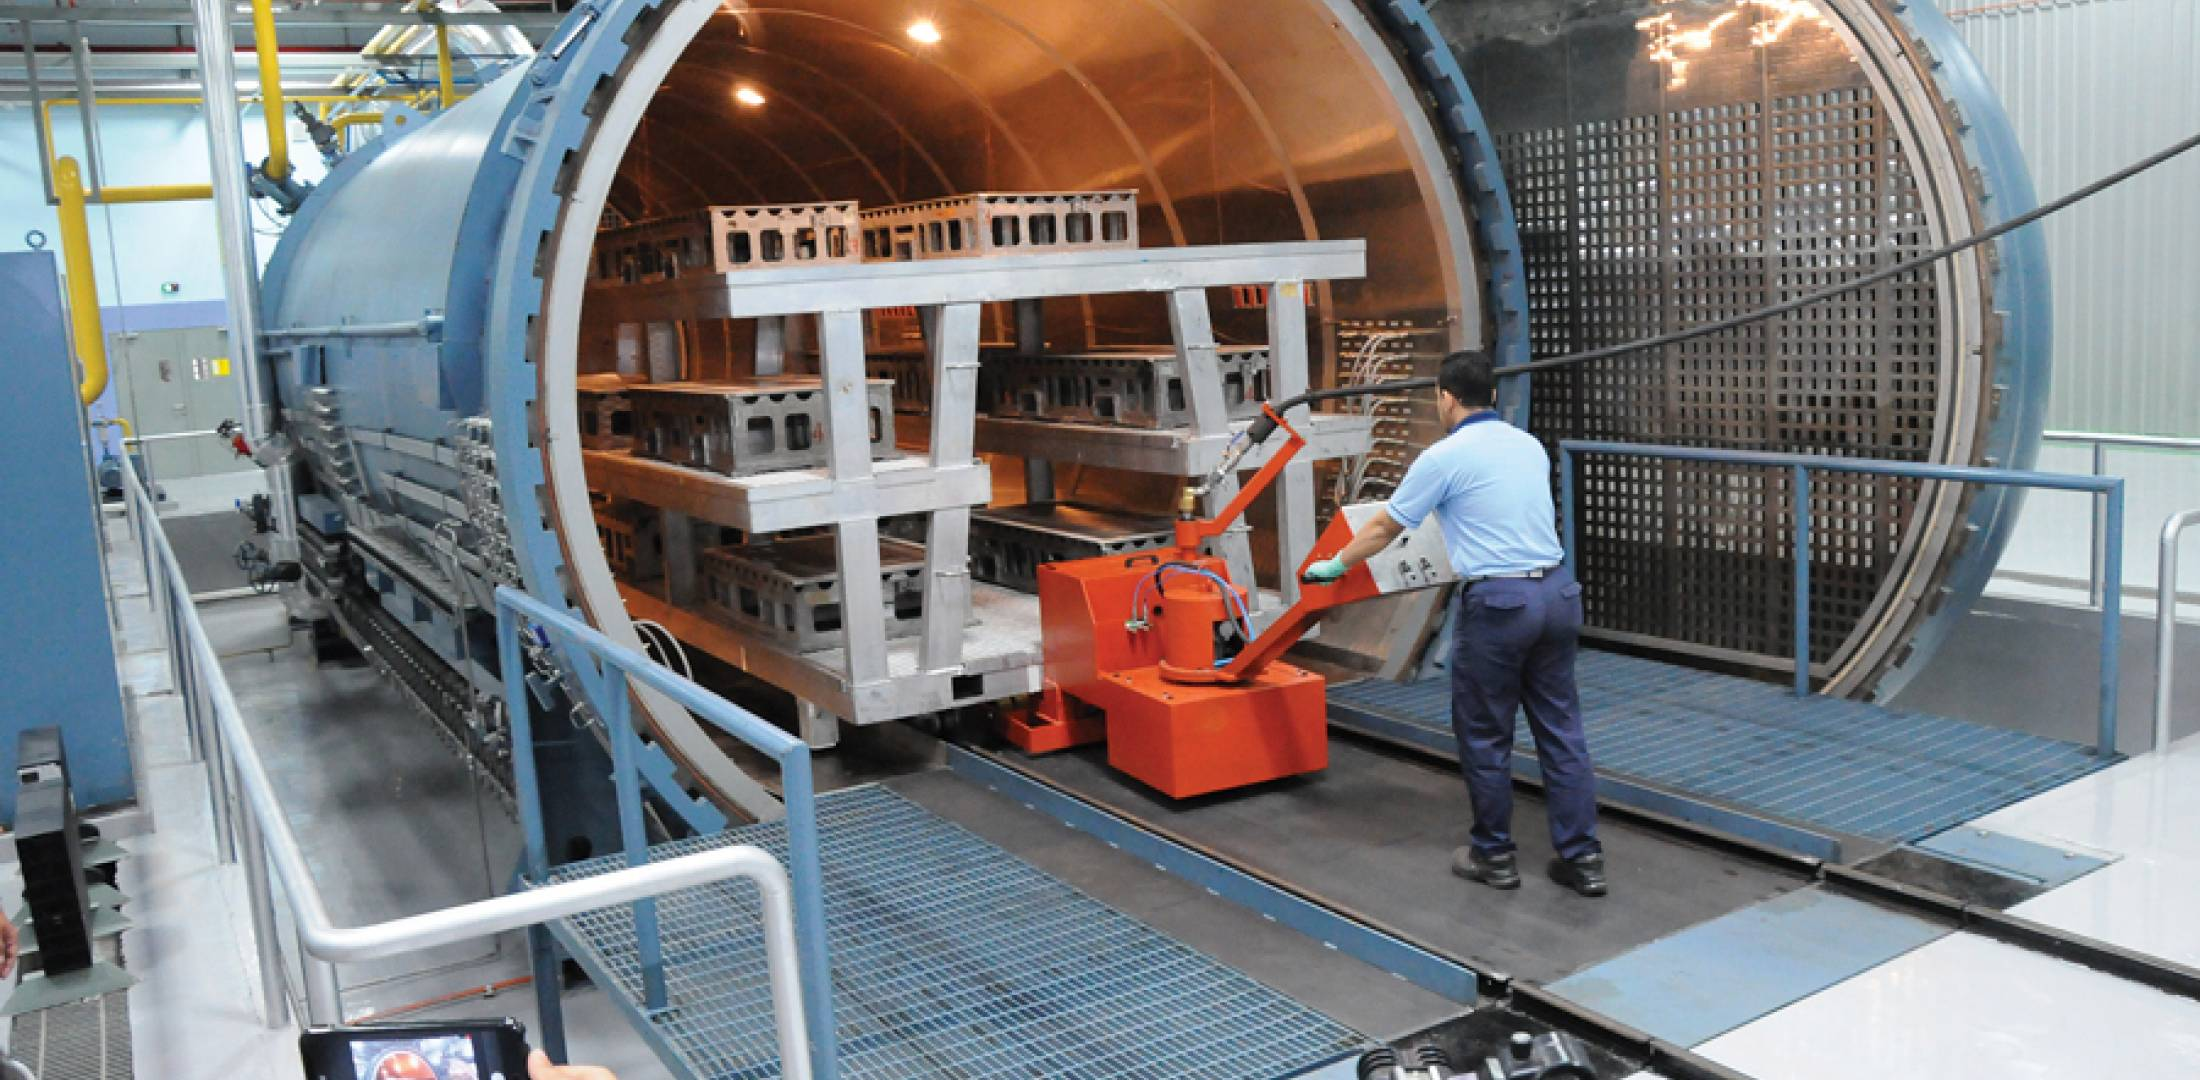 A worker loads aircraft parts into a new autoclave at the expanded Aerospace Composites Malaysia facility, jointly owned by Boeing and Hexcel. The factory is to be expanded by 40 percent to accommodate increased production by Boeing Commercial Airplanes.